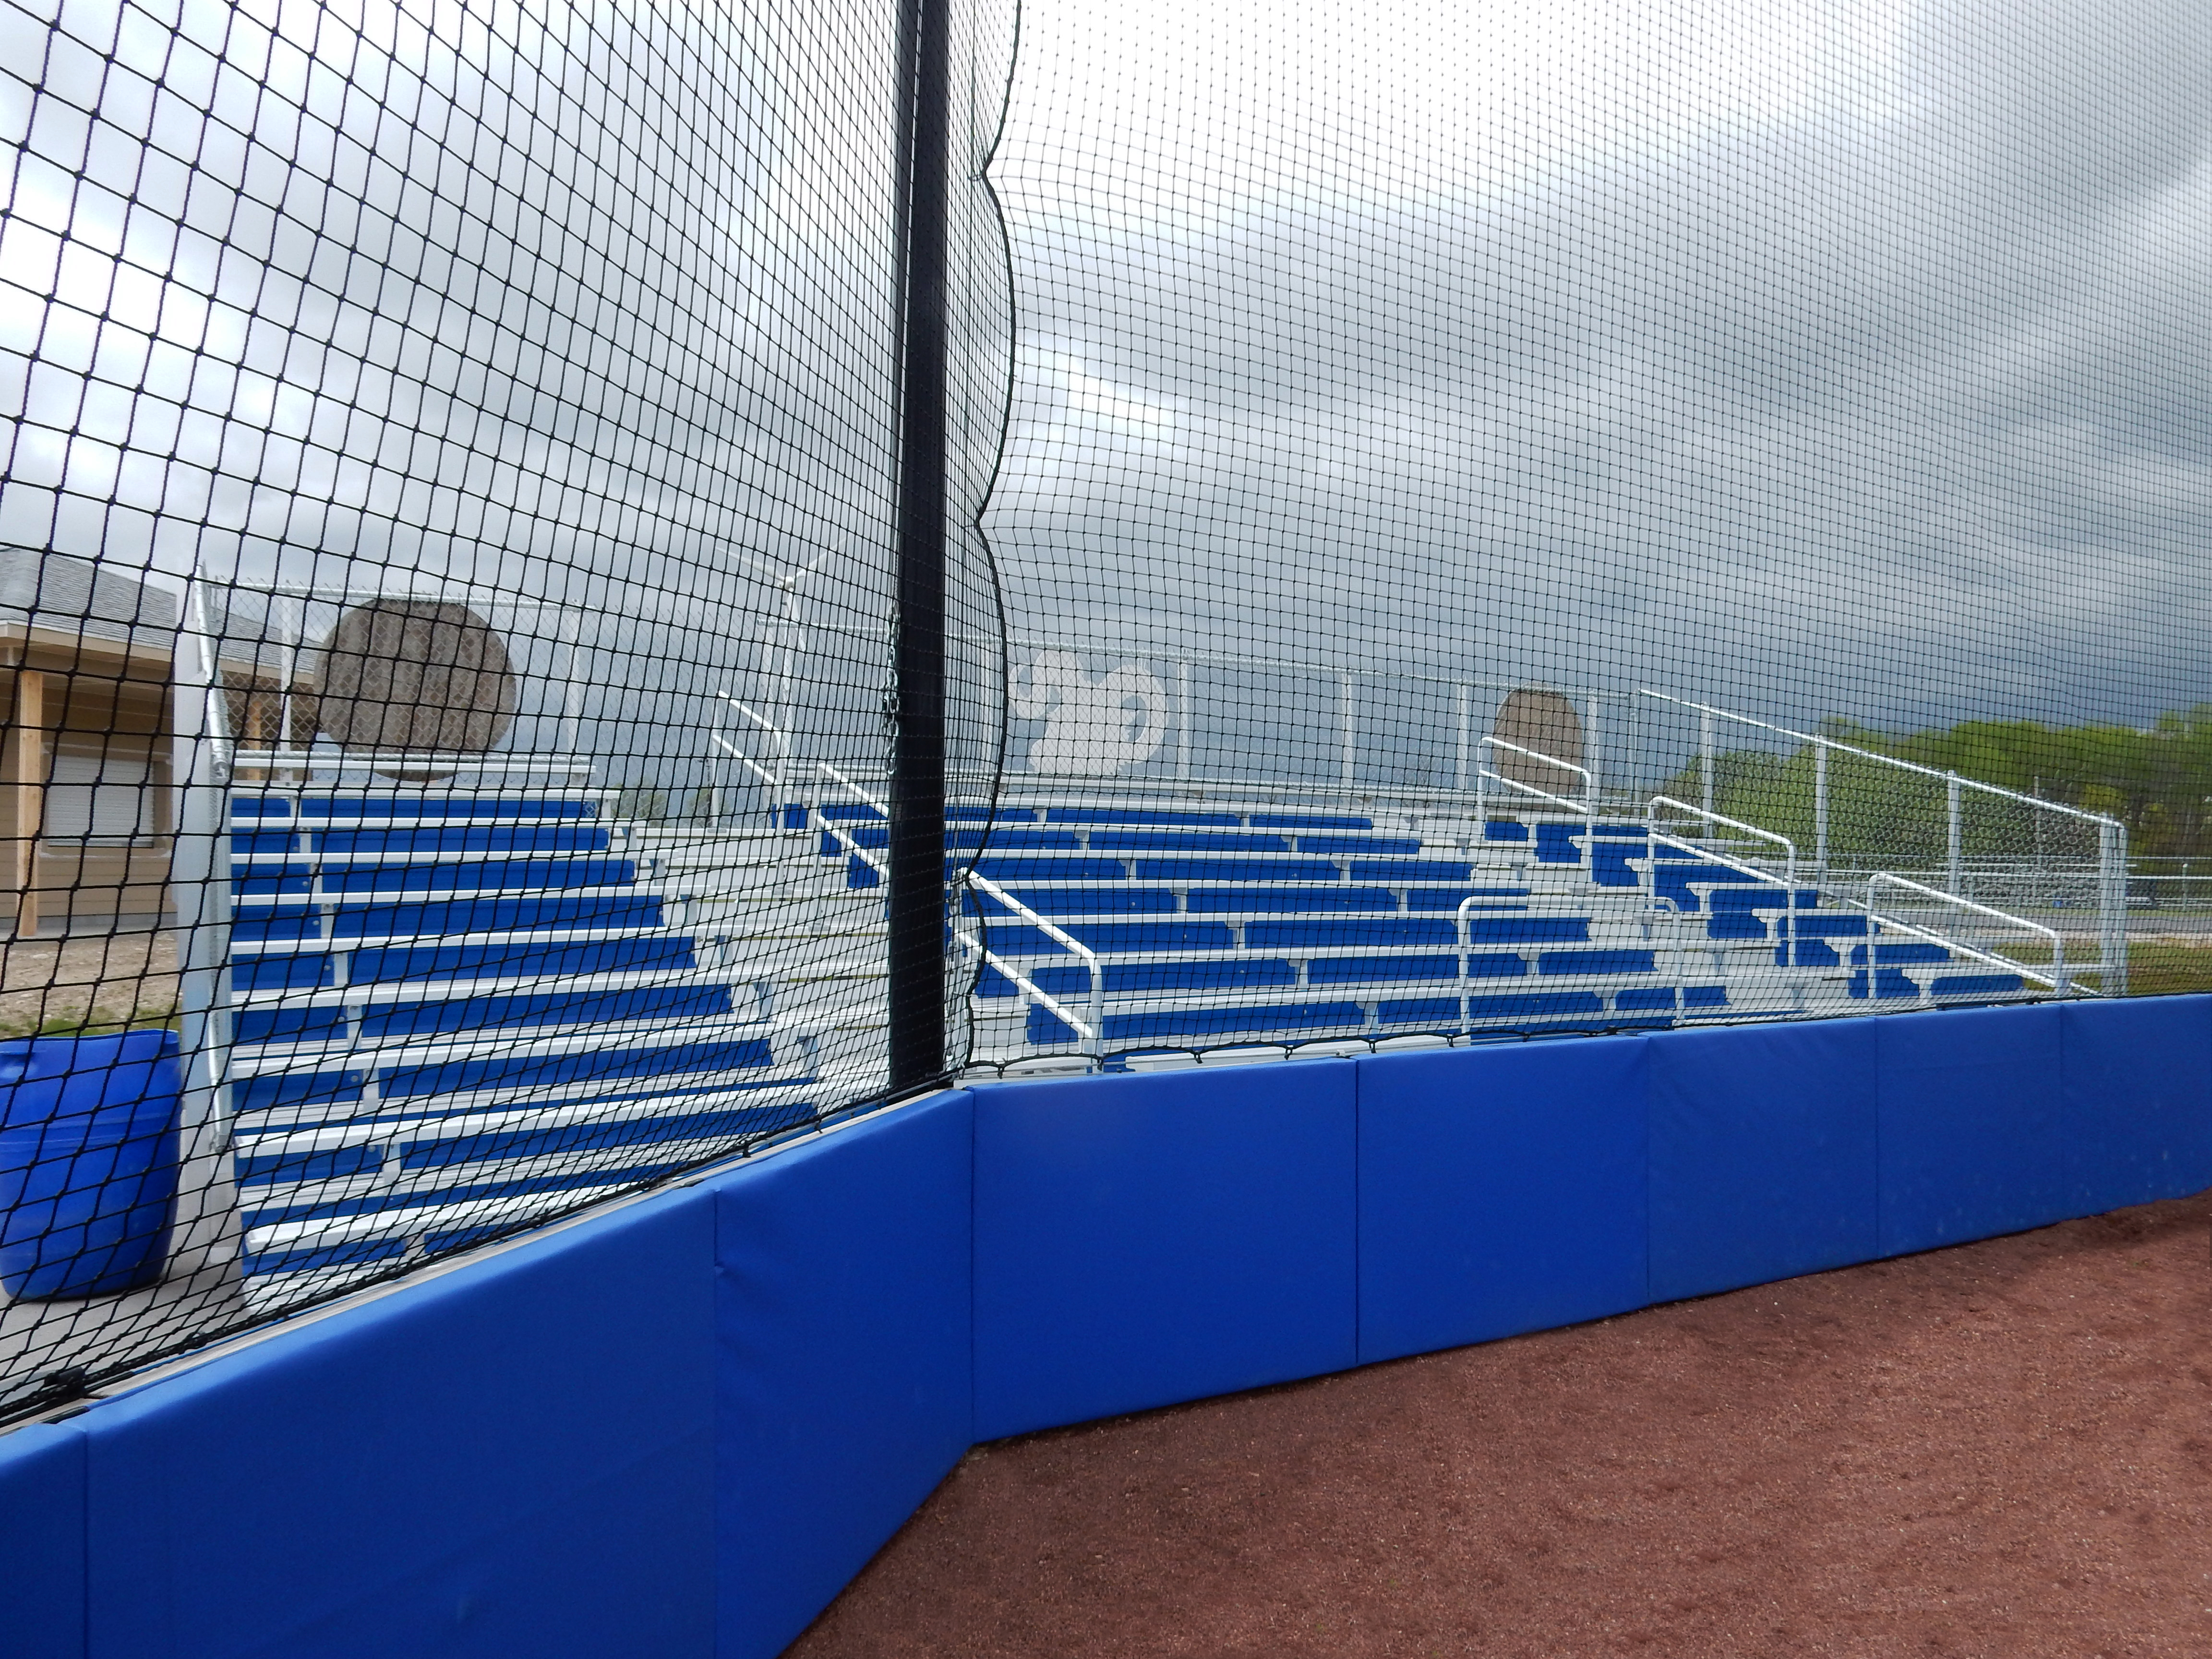 CustomPadding Protective padding for wall below net at a baseball stadium in front of the bleachers. Royal blue.